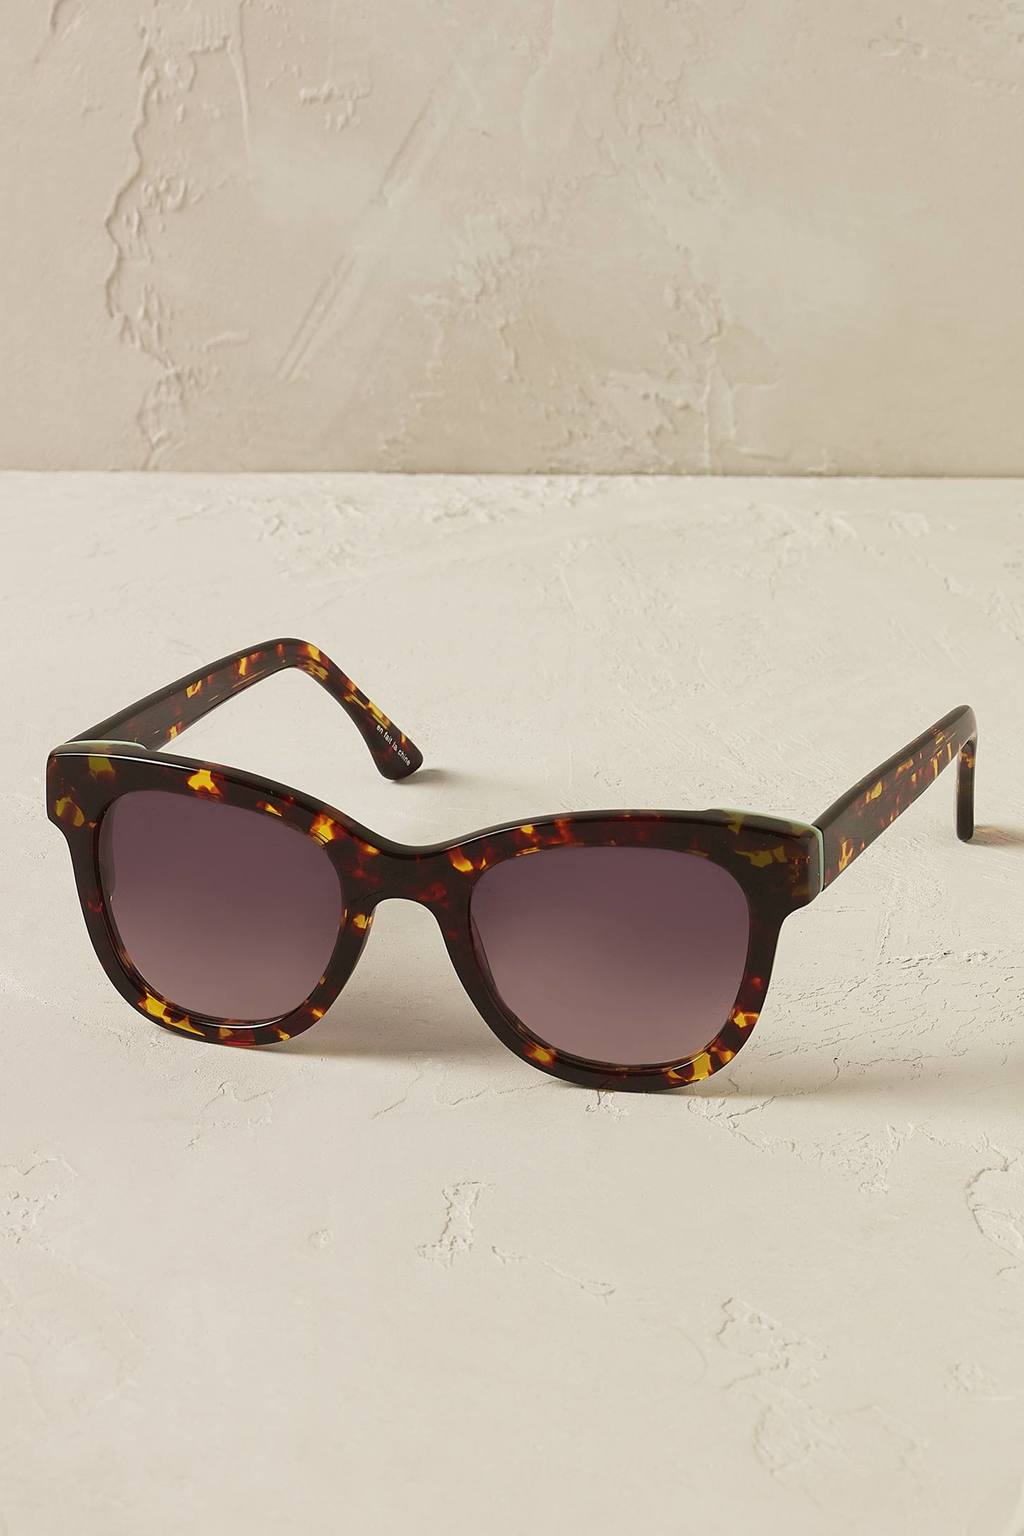 Minted Wayfarer Sunglasses - predominant colour: chocolate brown; occasions: casual, holiday; style: cateye; size: large; material: plastic/rubber; pattern: tortoiseshell; finish: plain; season: s/s 2016; wardrobe: basic